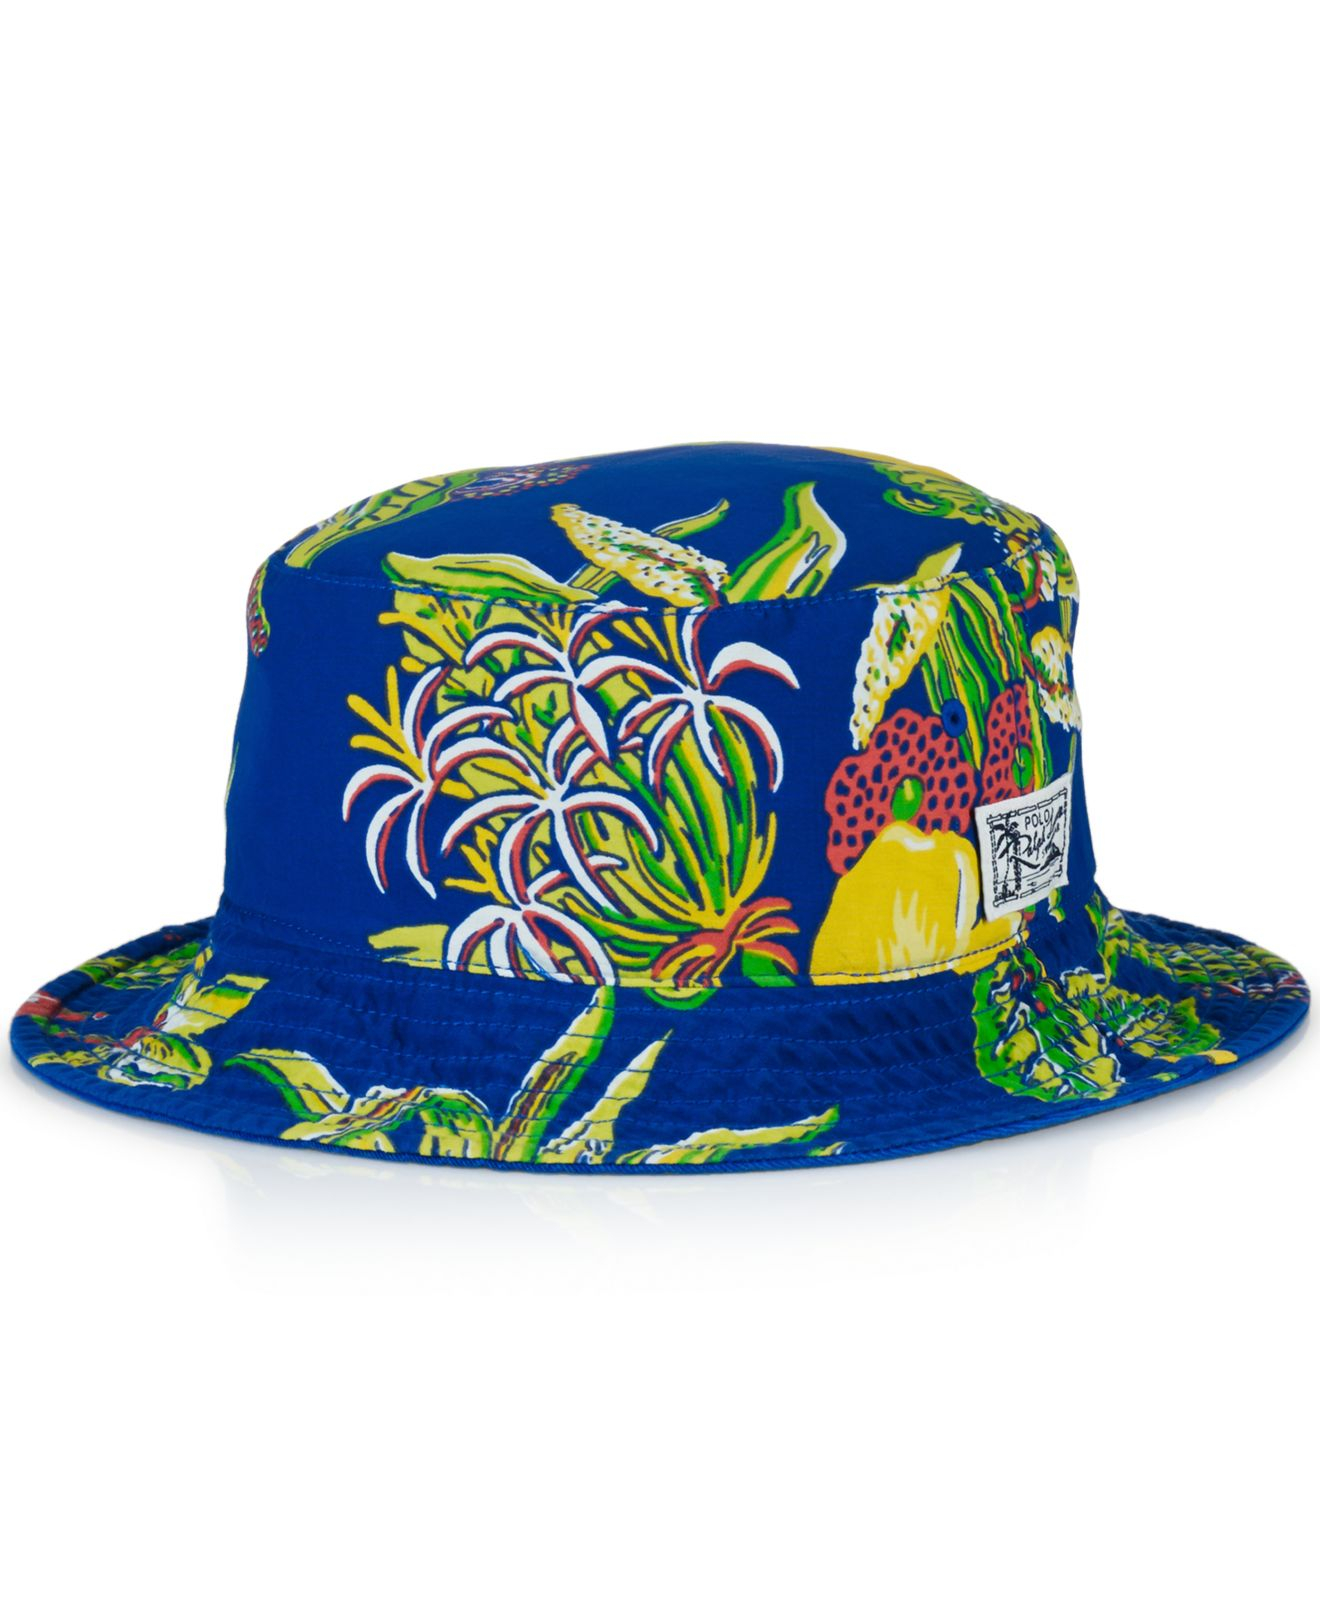 07383ea66cc Lyst - Polo Ralph Lauren Reversible Bucket Hat in Blue for Men